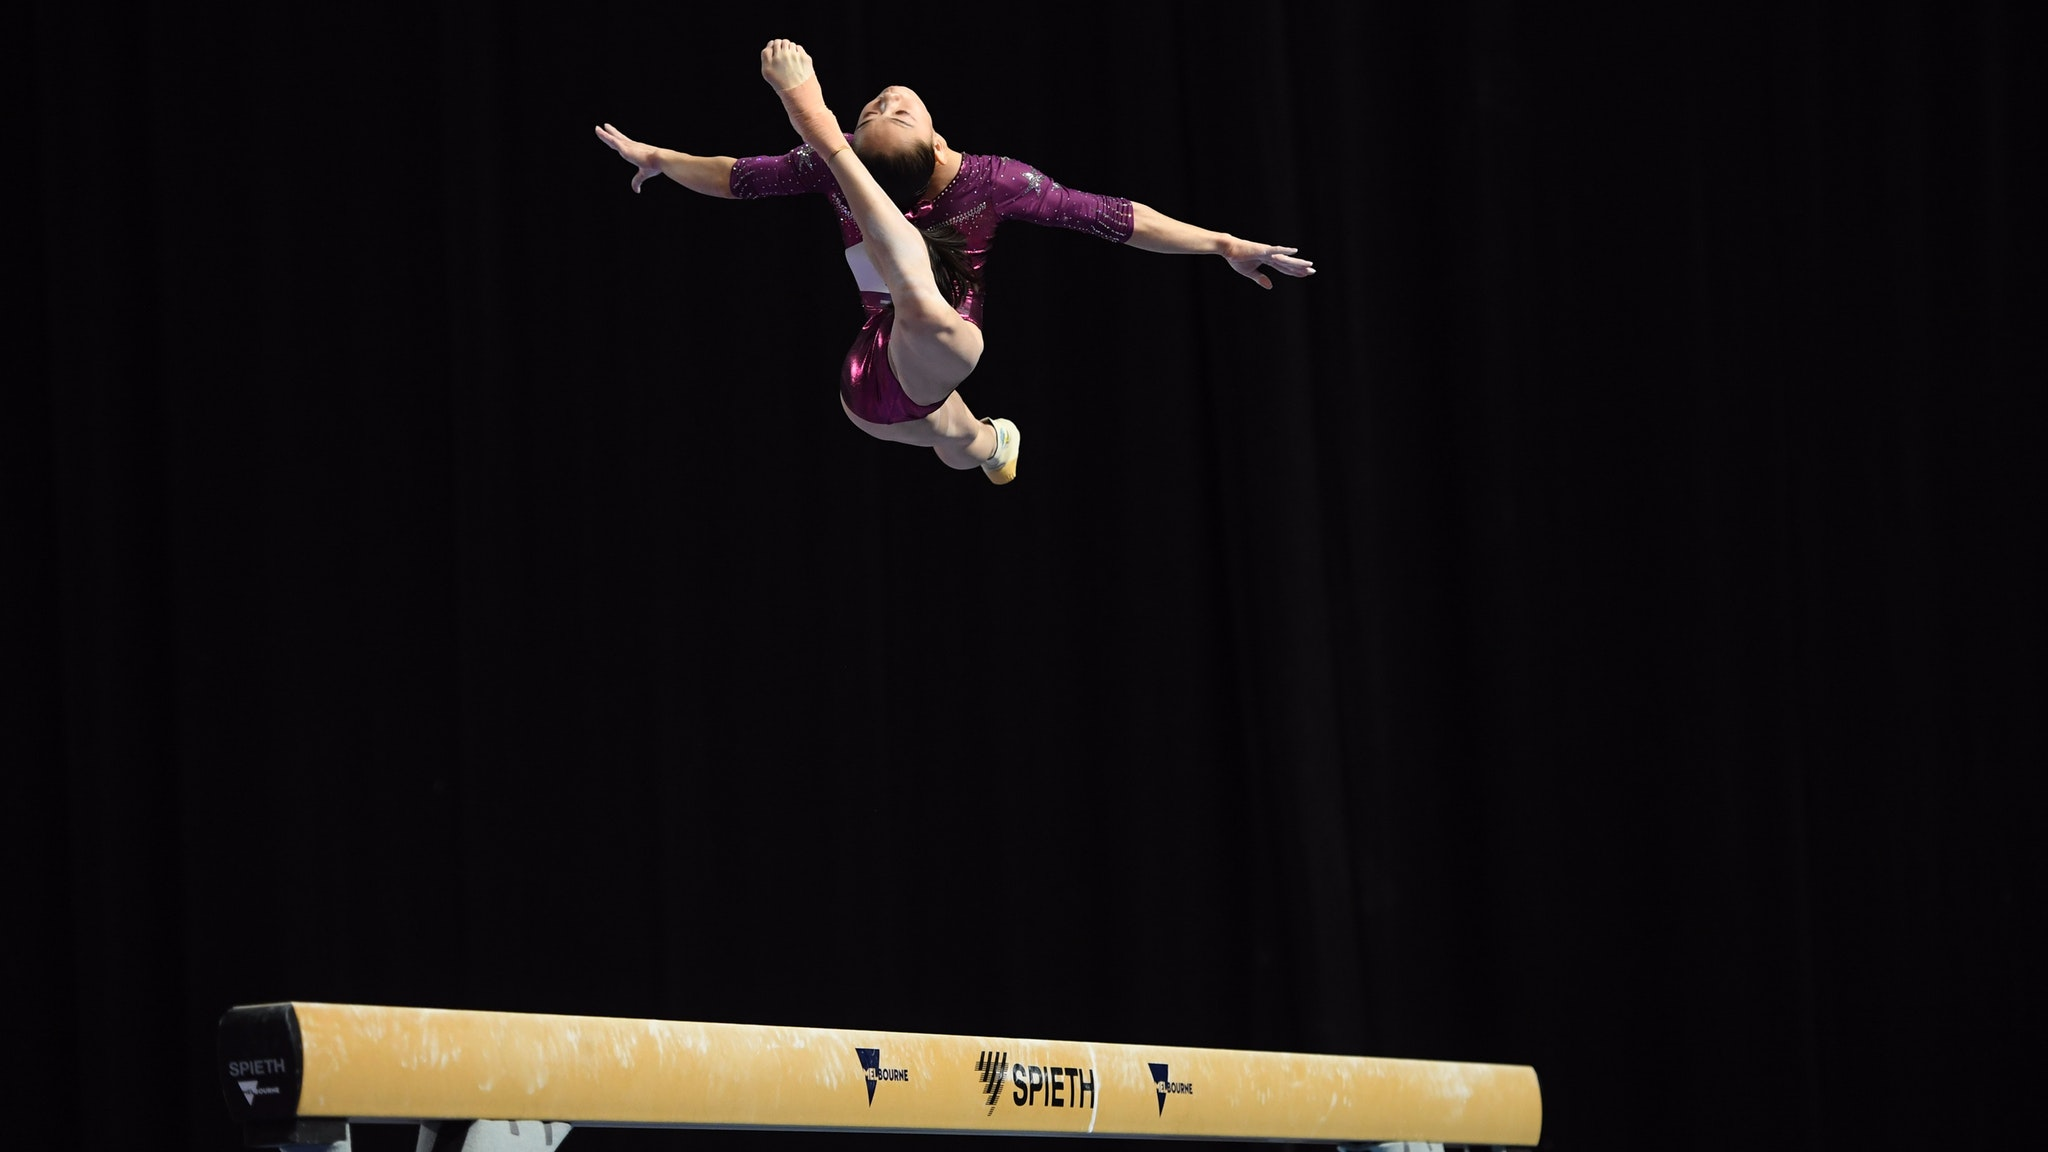 Female gymnast from China performing a ring leap on the Balance Beam